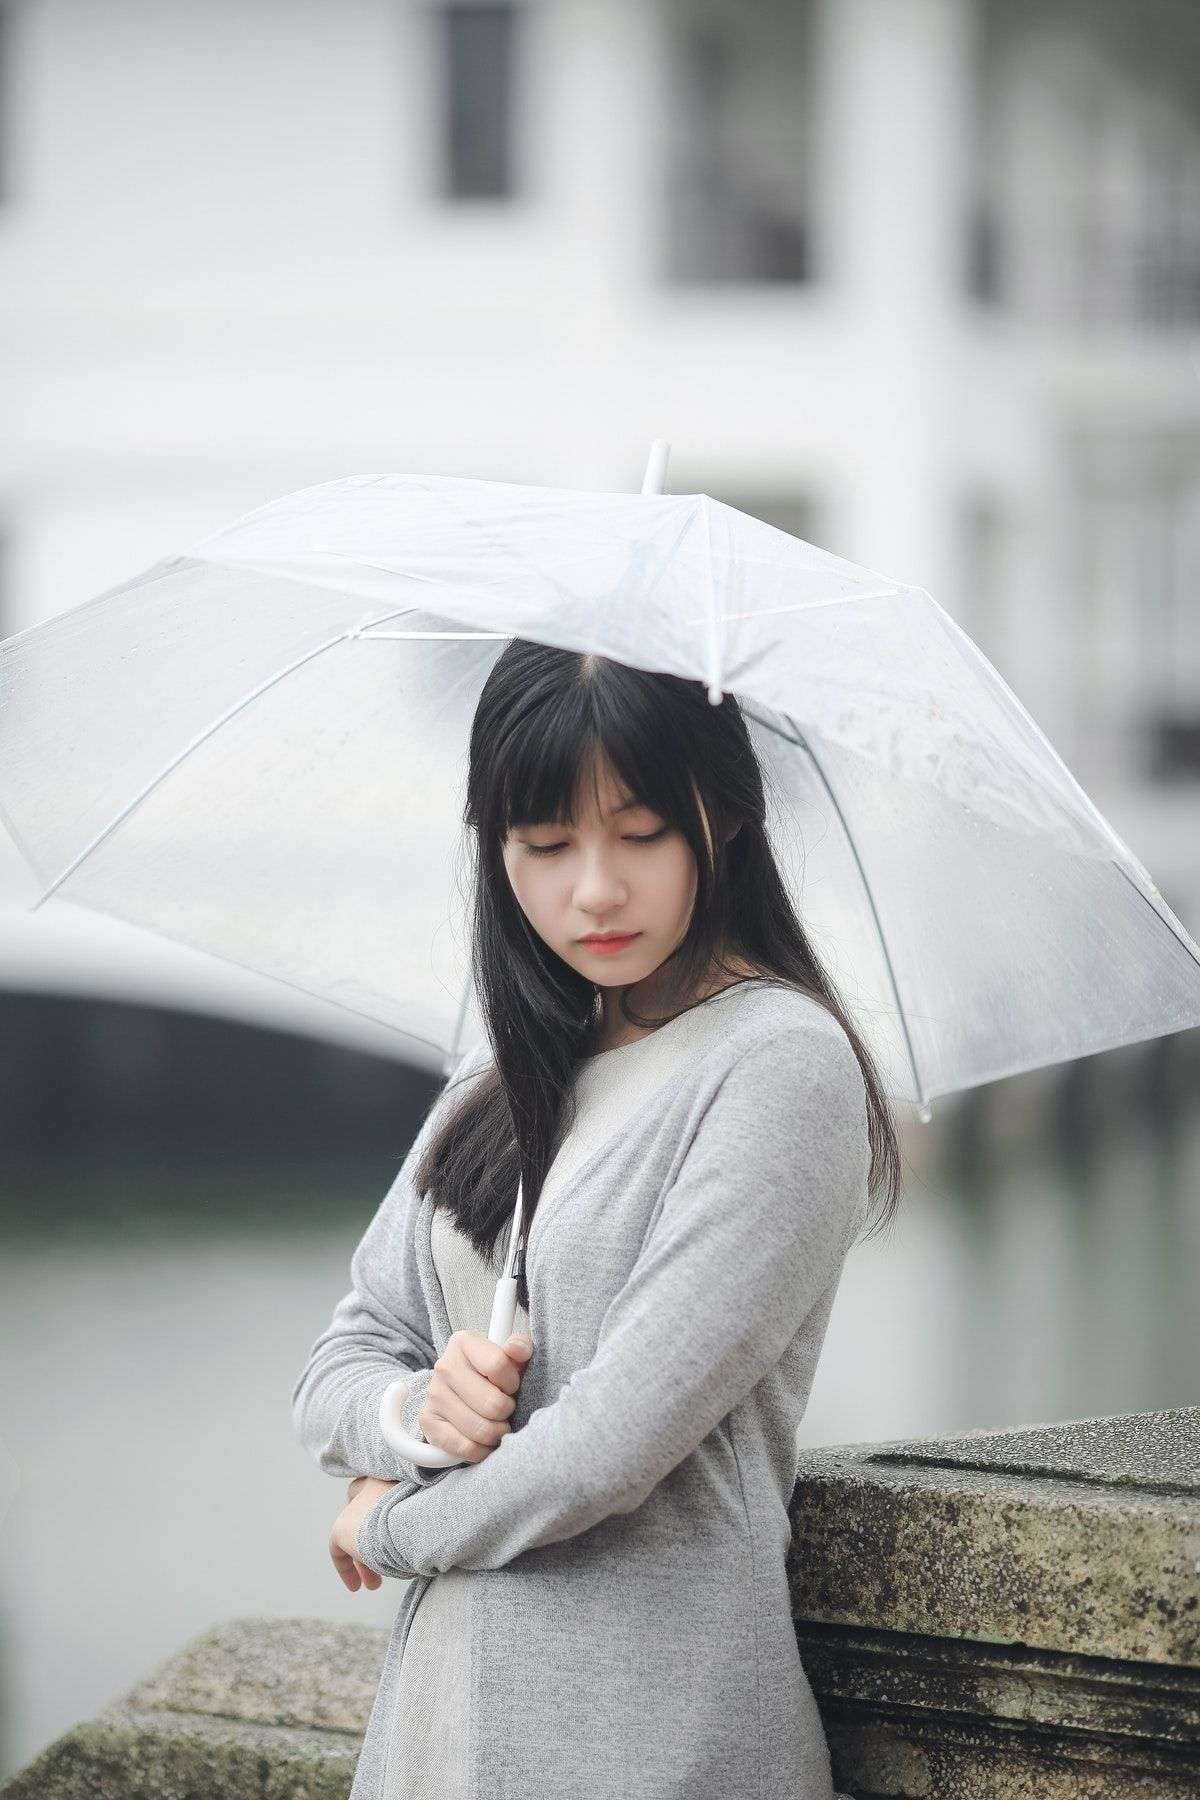 Woman Wearing Gray Sweater Holding Clear Umbrella Free Stock Photo #clearumbrella Woman Wearing Gray Sweater Holding Clear Umbrella Free Stock Photo #clearumbrella Woman Wearing Gray Sweater Holding Clear Umbrella Free Stock Photo #clearumbrella Woman Wearing Gray Sweater Holding Clear Umbrella Free Stock Photo #clearumbrella